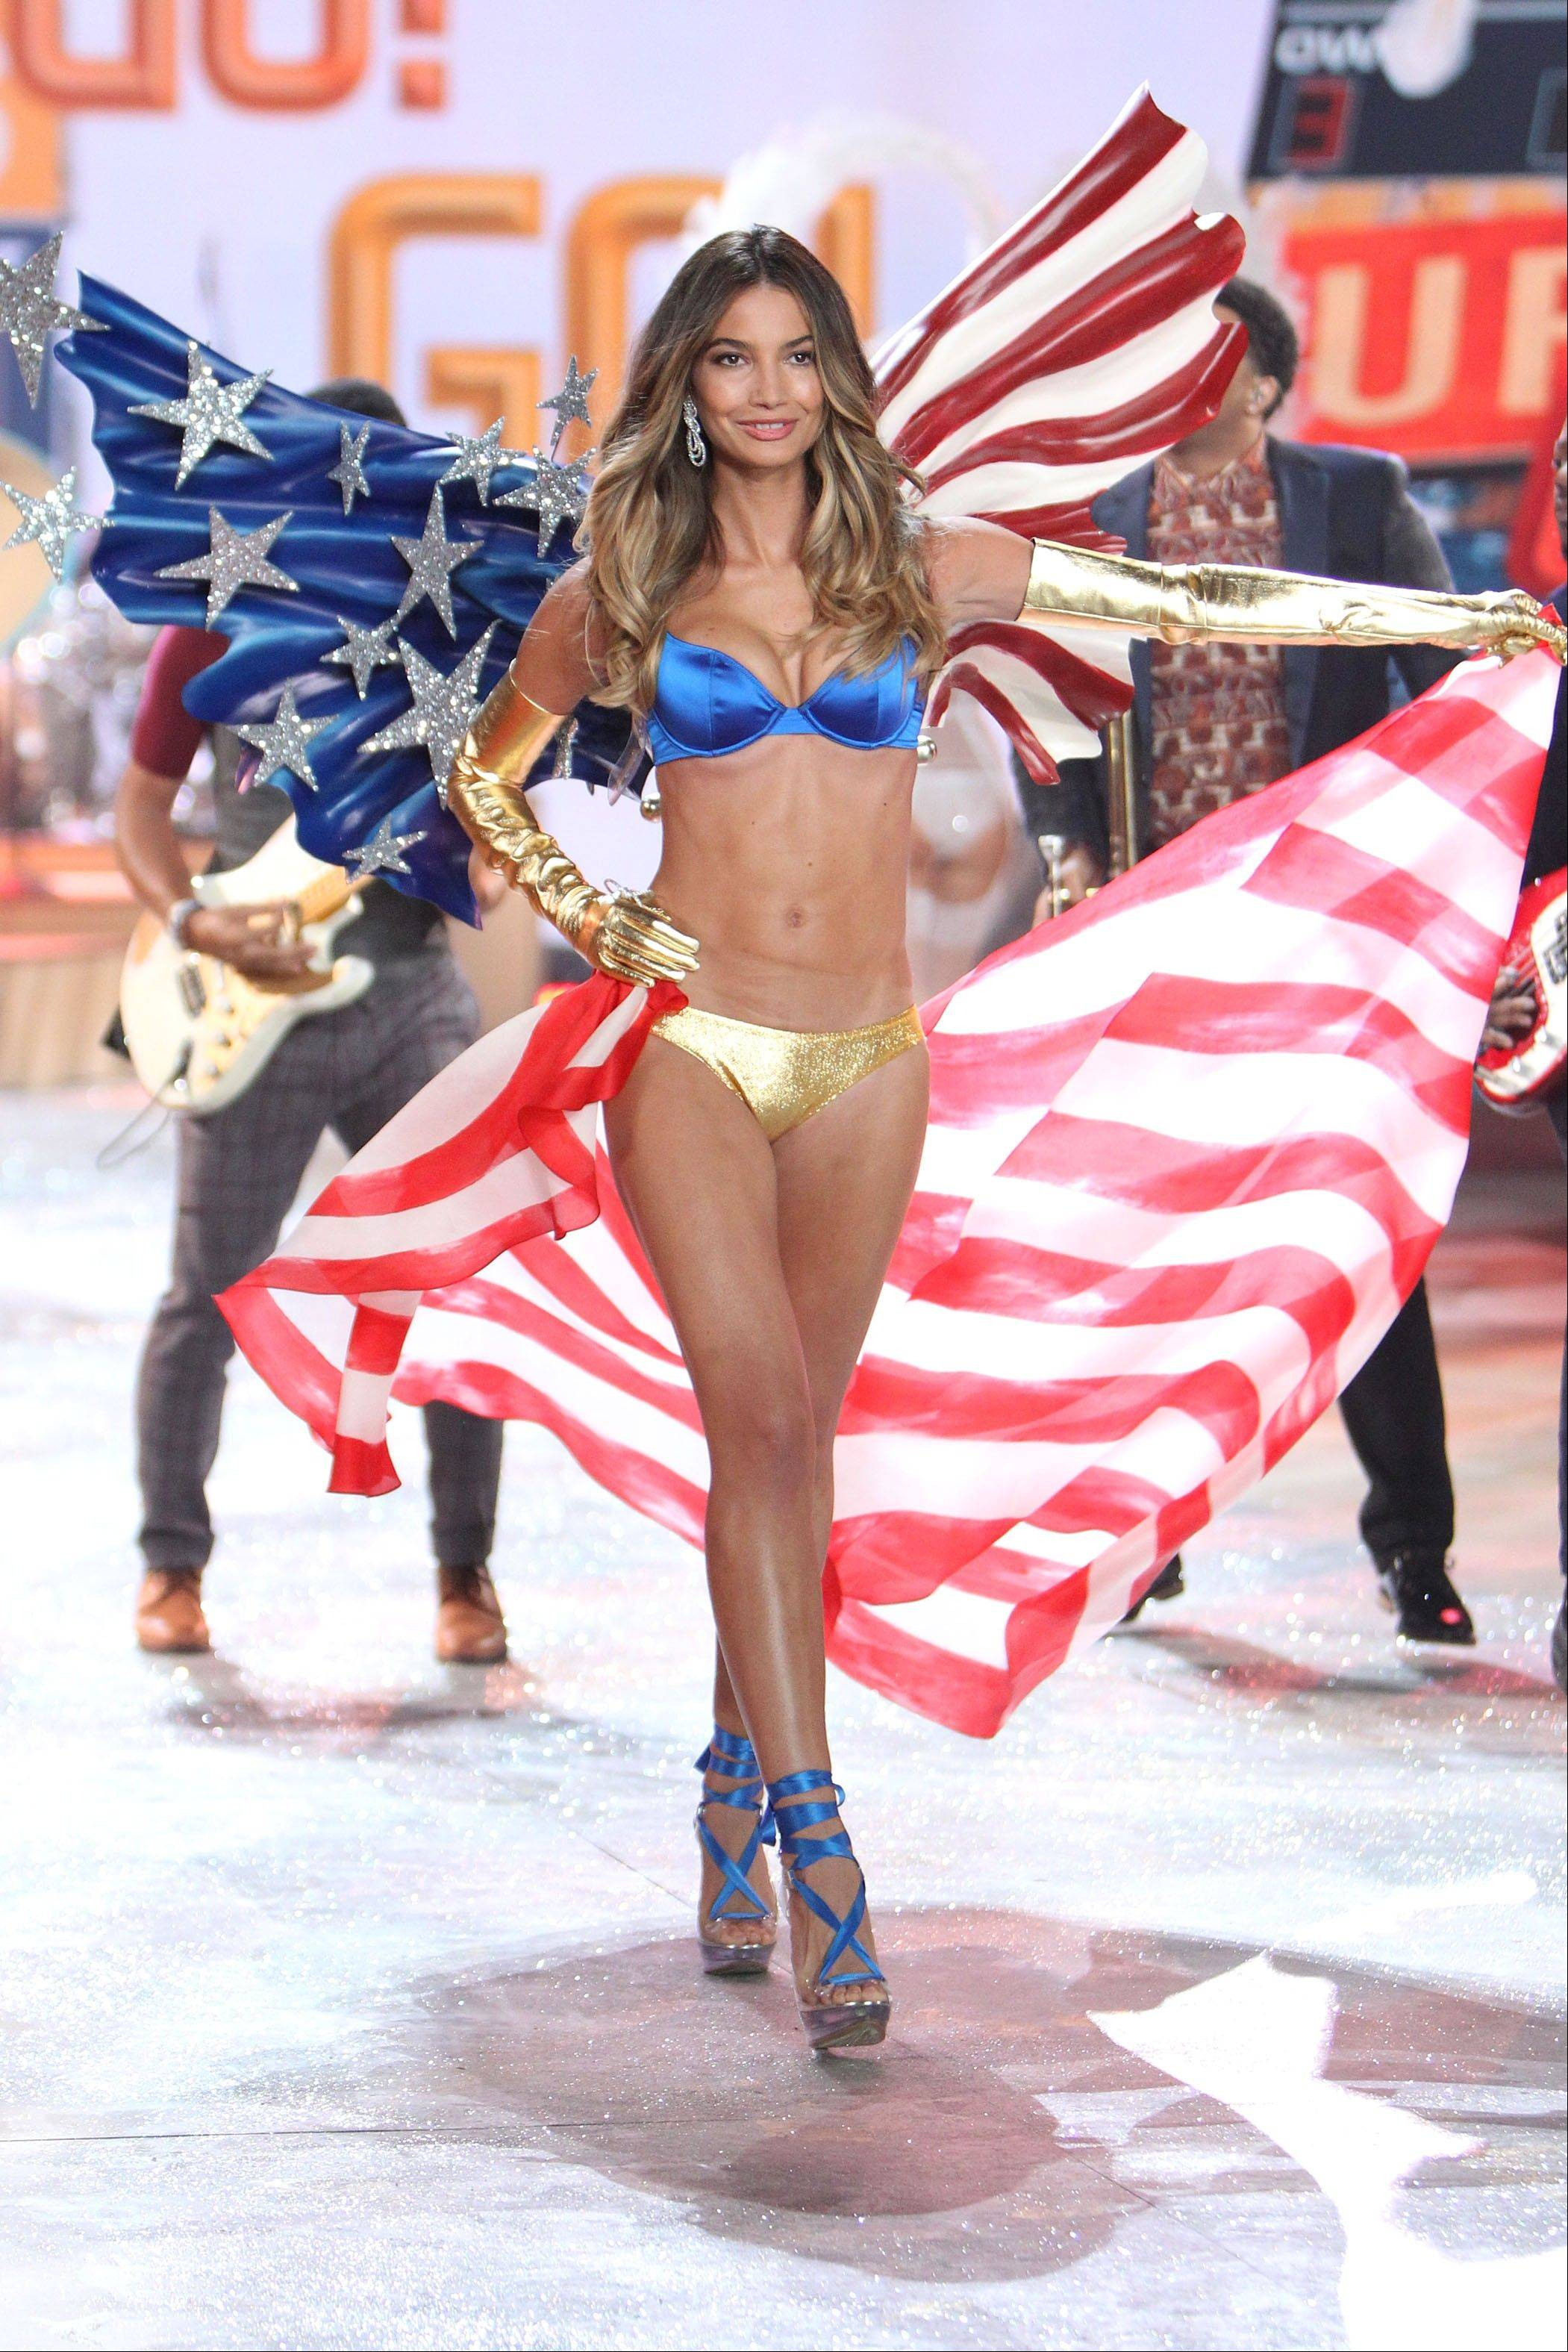 Victoria's Secret fashion show rocks the catwalk